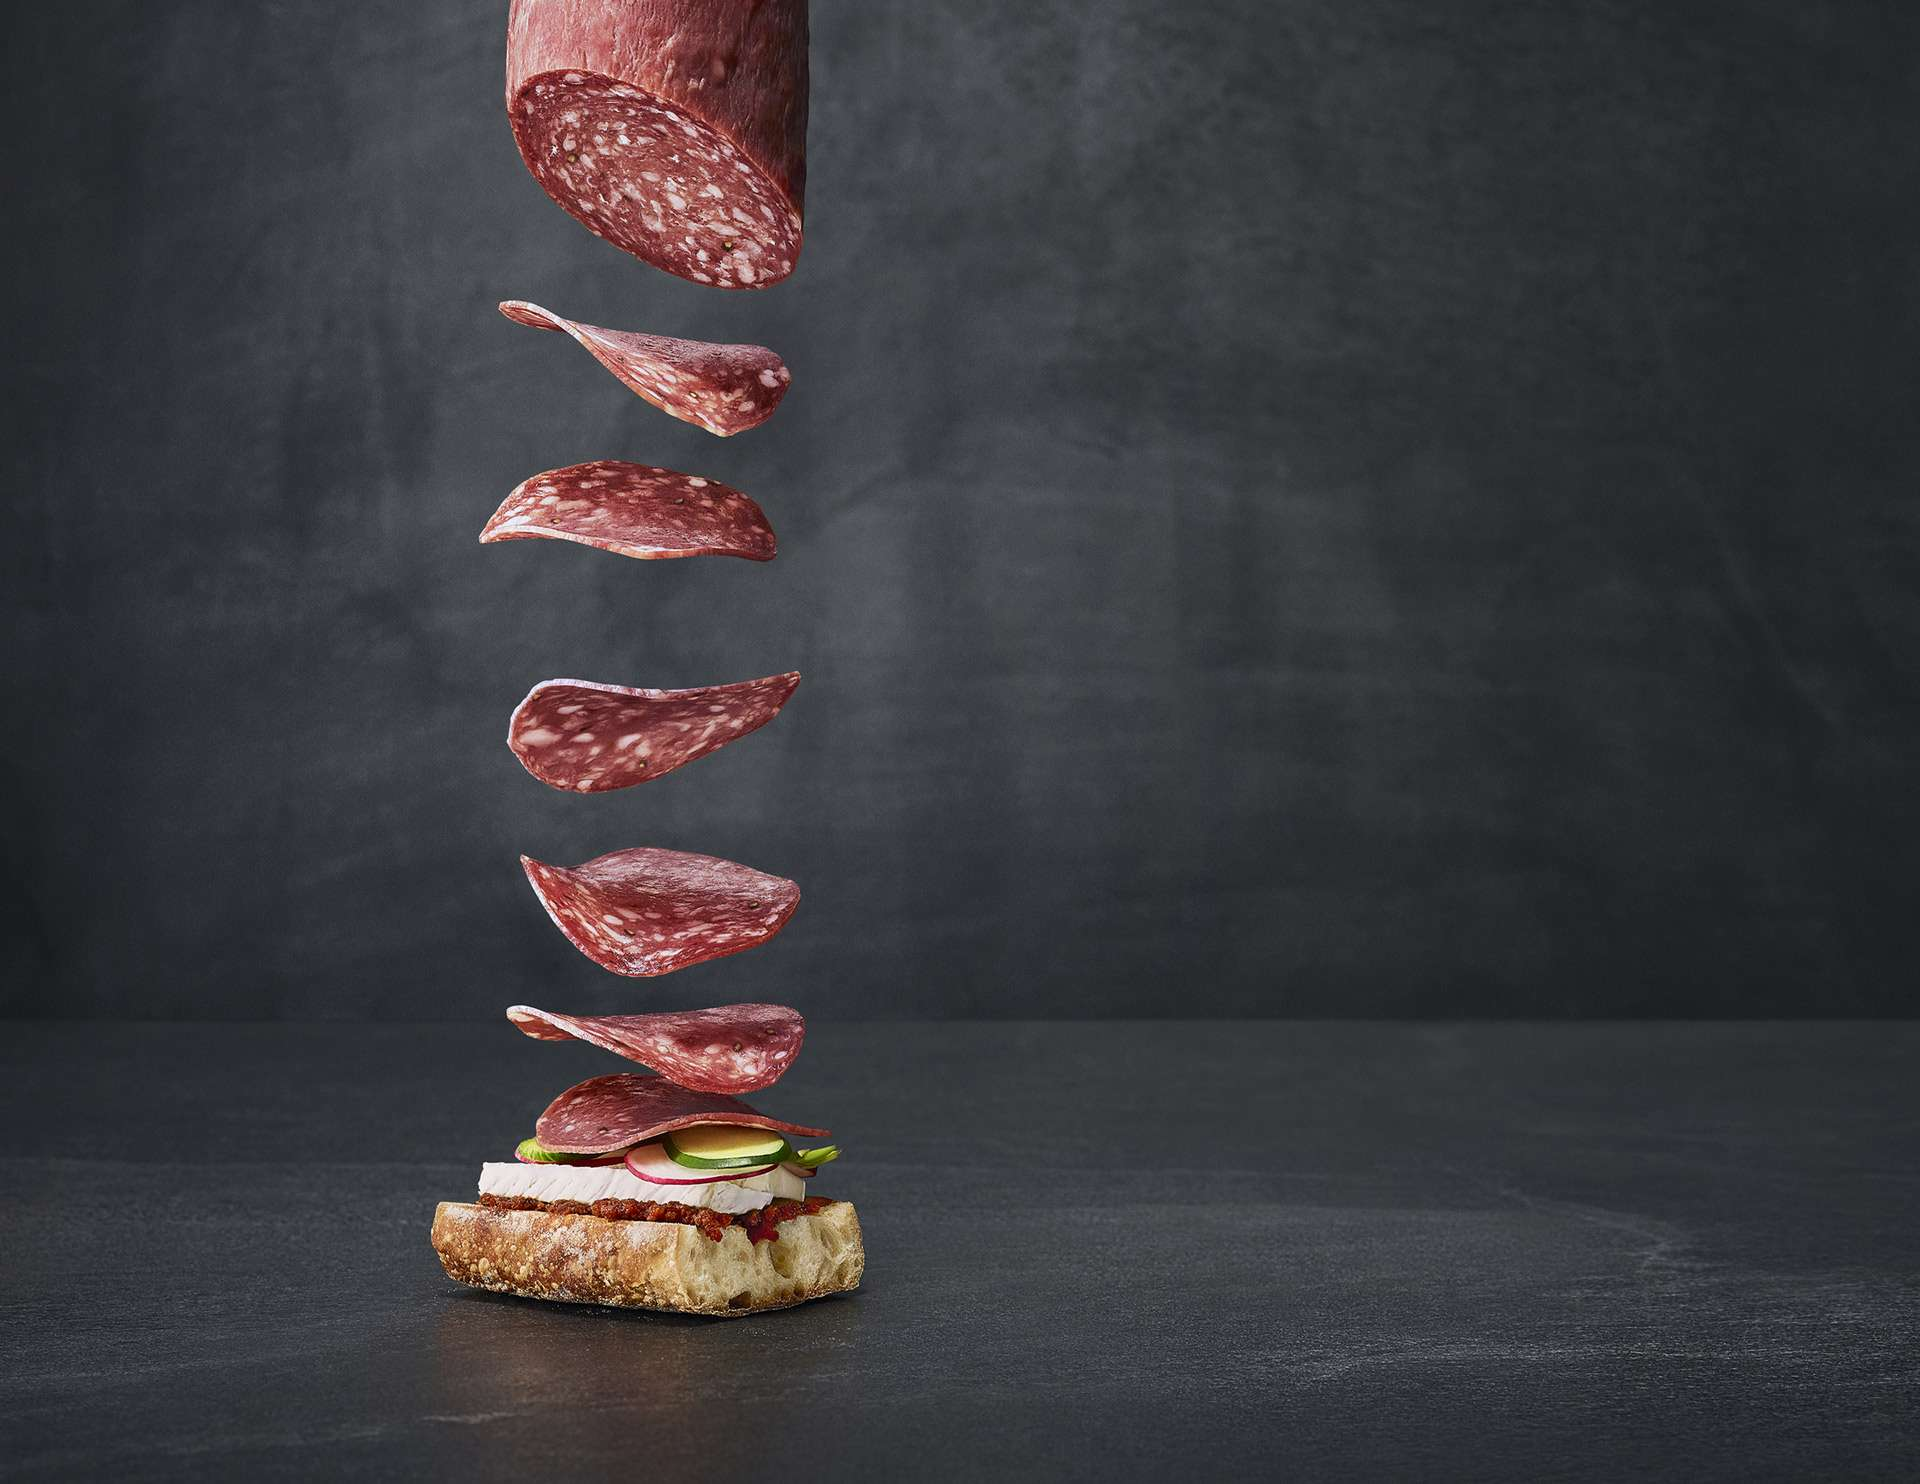 wide shot of salami slices falling softly on bread with tomato spread brie cheese and vegetables by Mathieu Levesque for Fantino and Mondello Rethink